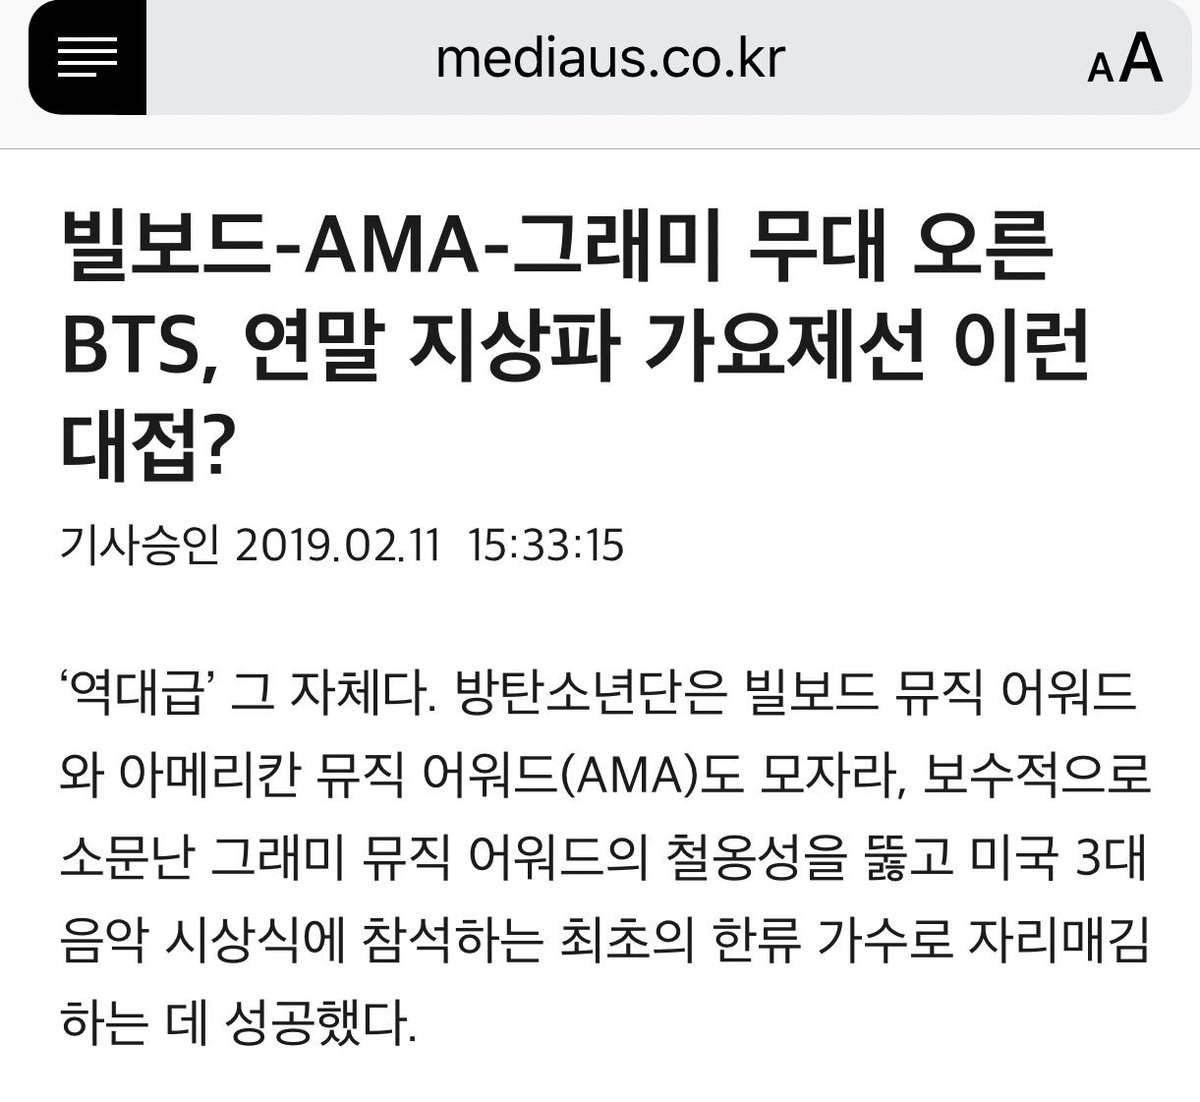 """""""BTS graced the BB-AMA-Grammy stages and get treated by the major broadcasters' year end shows like this?""""   Not only did @BTS_twt attend the BBMAs + AMAs, they broke through the famously conservative Grammys, successfully cementing themselves as the greatest Kpop artists. <br>http://pic.twitter.com/7mikhl9QTH"""